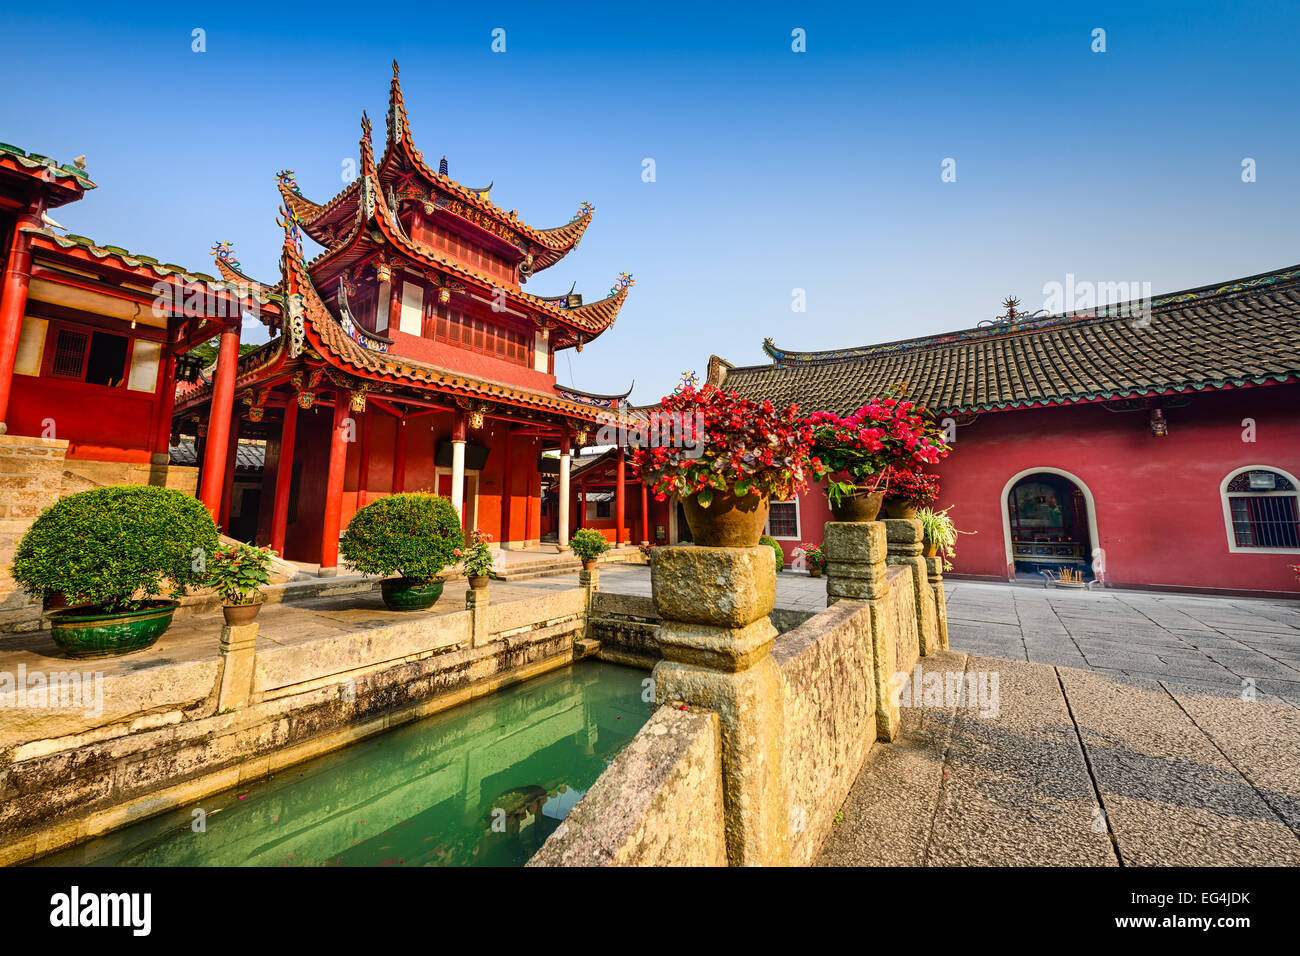 Fuzhou, China at Yongquan Temple on Drum Mountain. - Stock Image